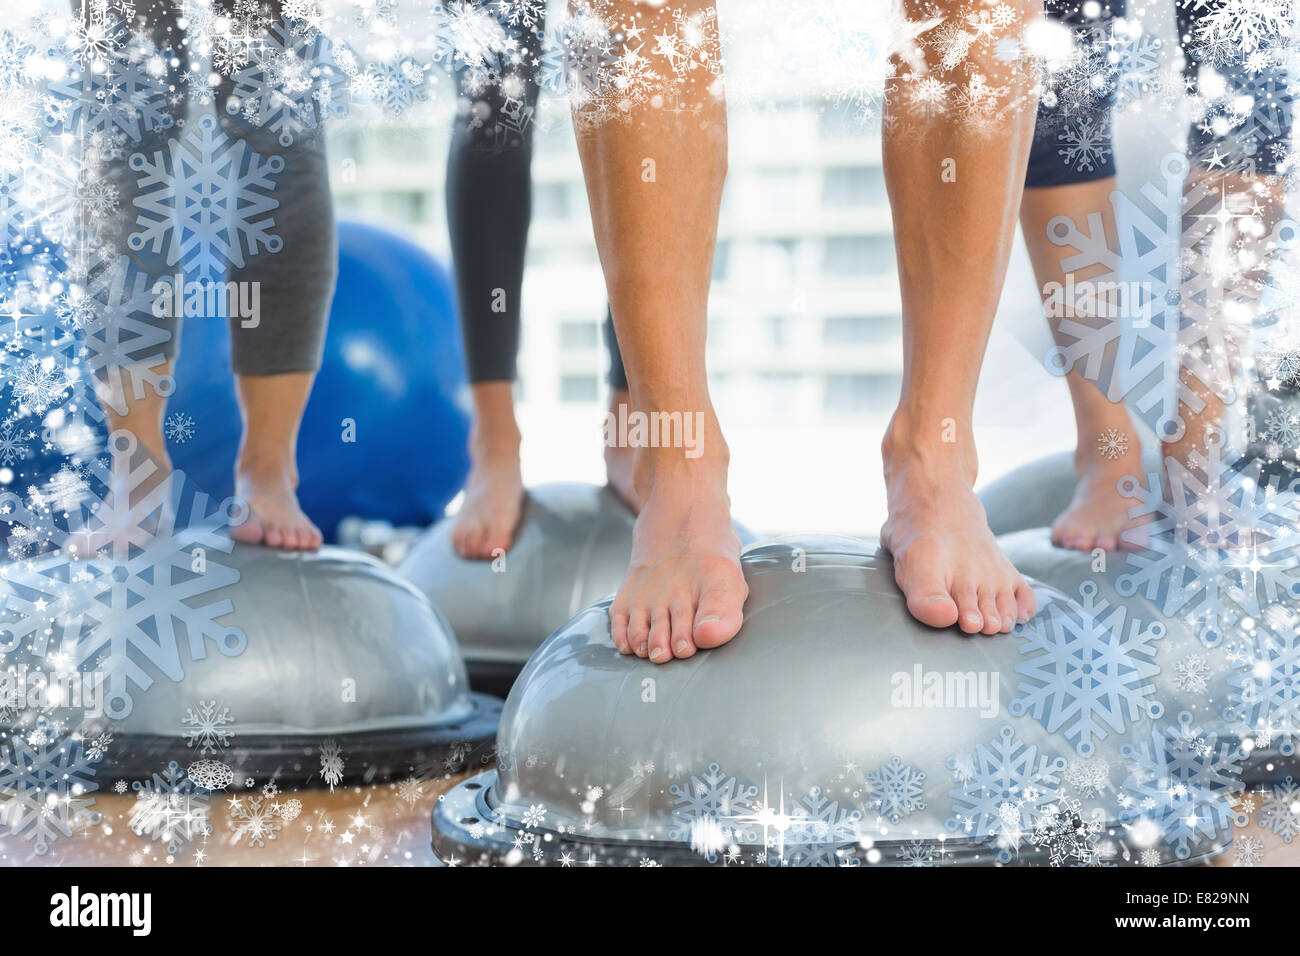 Low section of fit people standing on exercise equipment - Stock Image